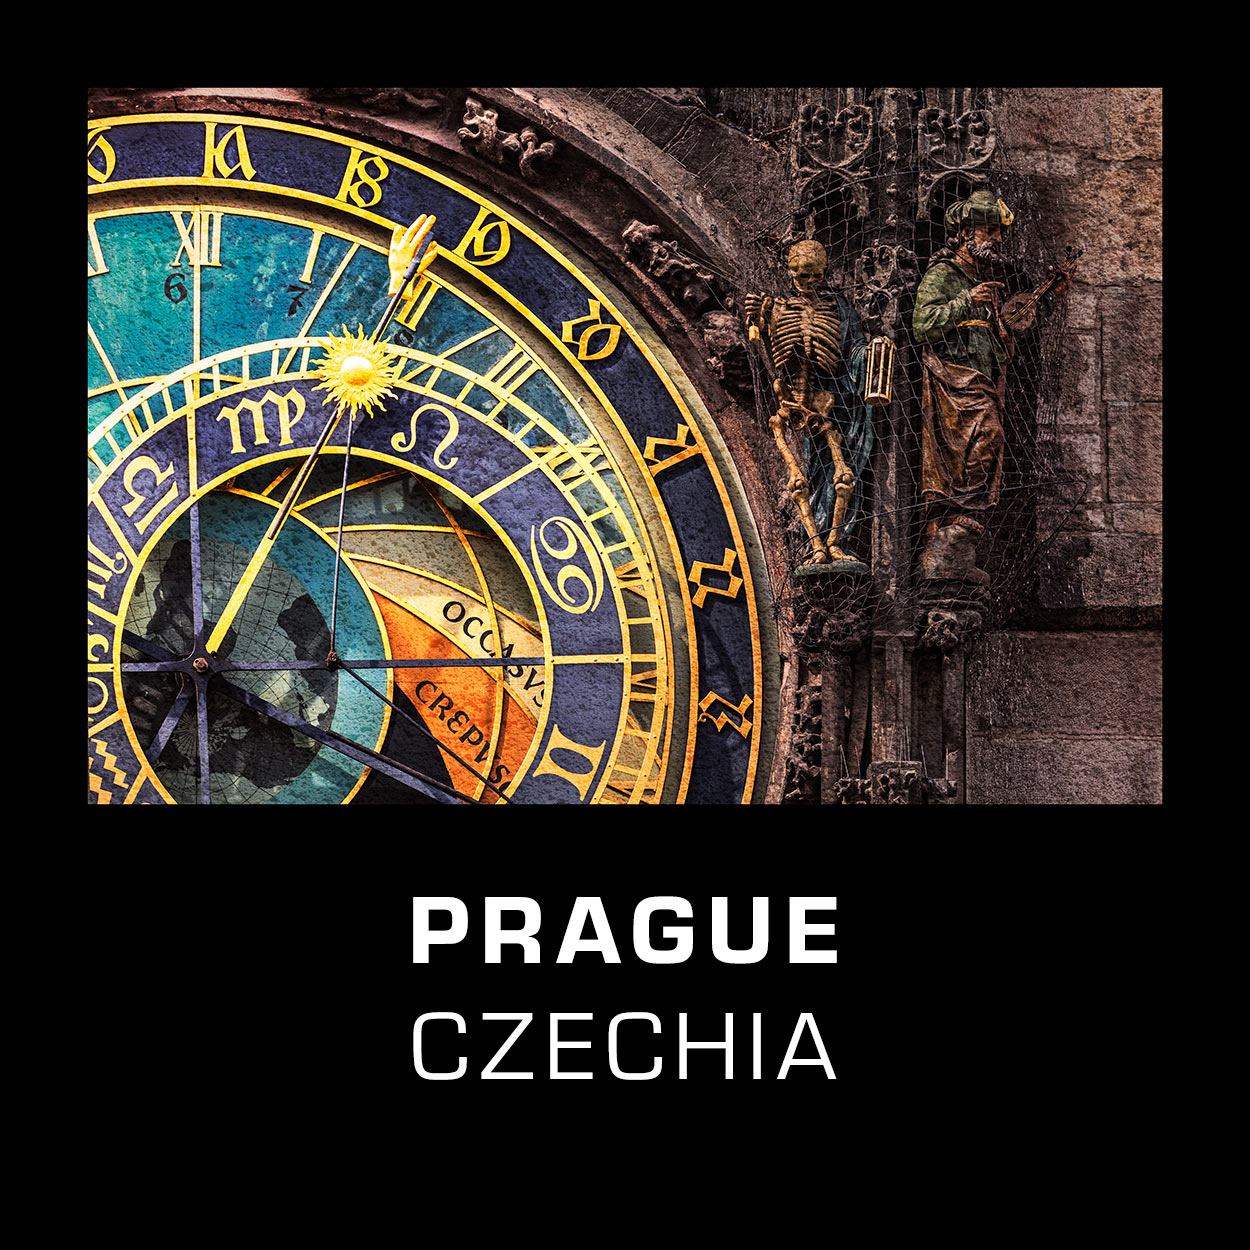 Prague, Czechia - Detail of the Prague Astronomical Clock a.k.a. Orloj